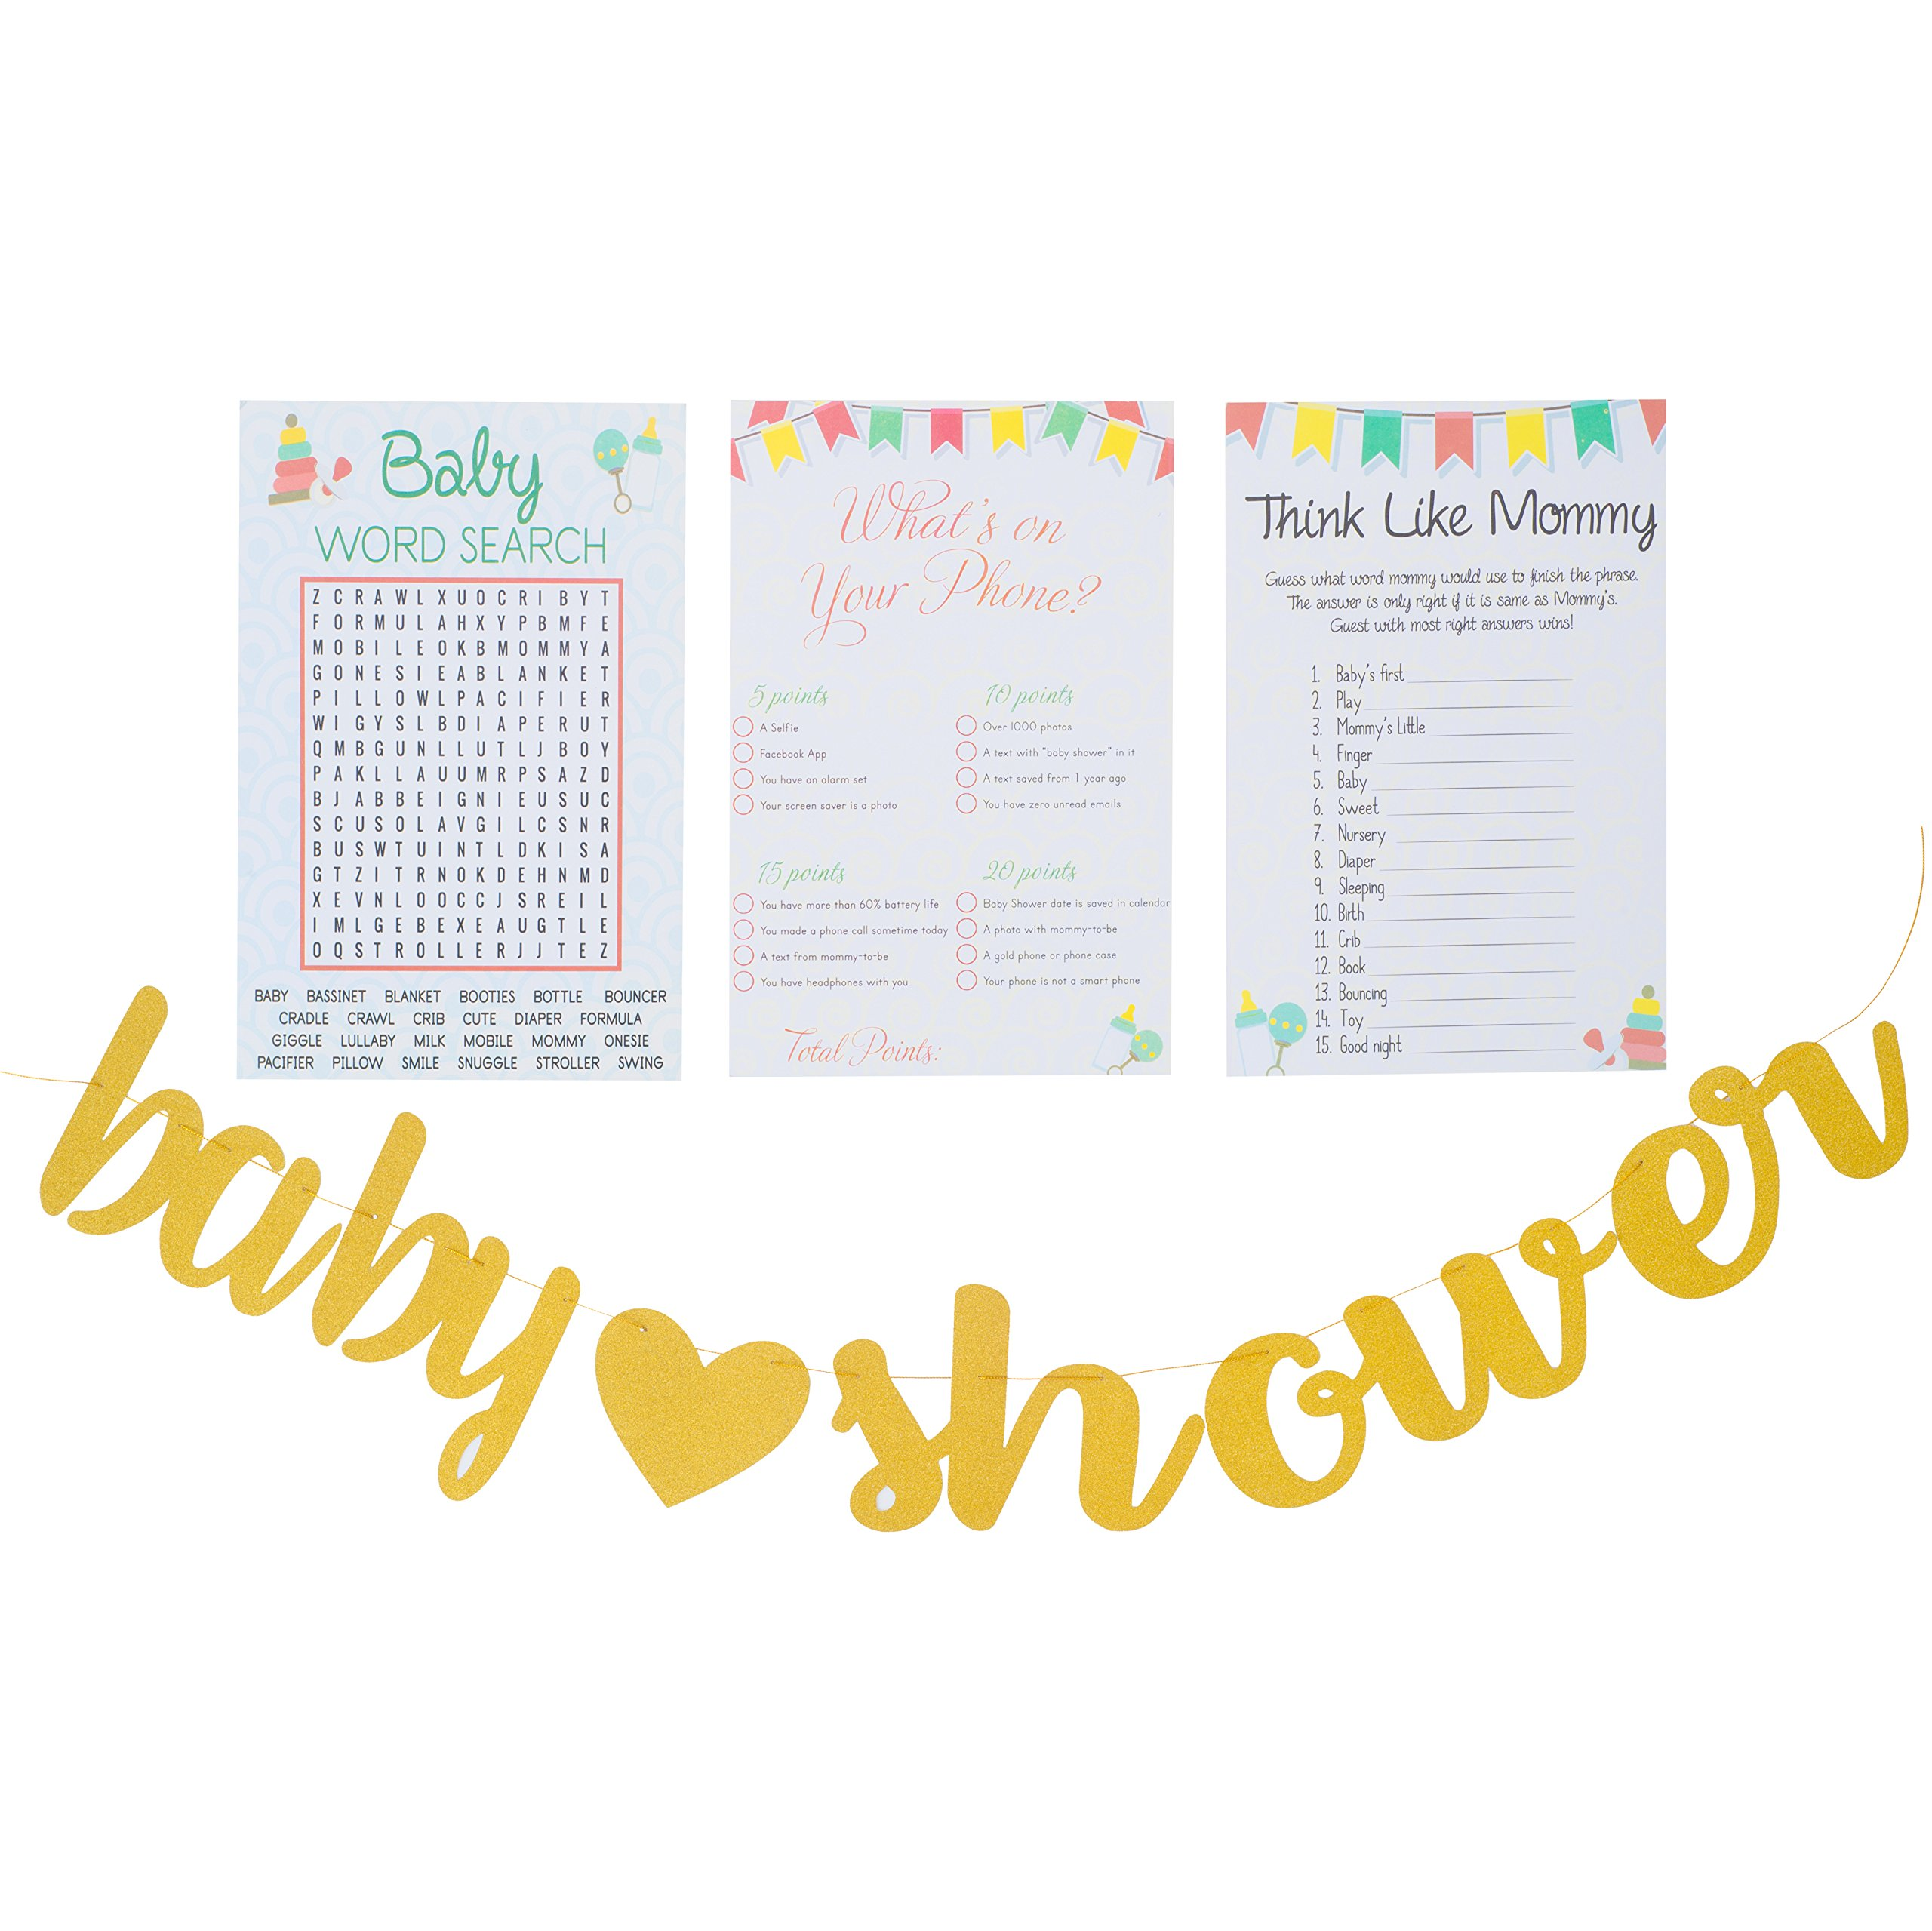 Planet Mango 3 Baby Shower Games | Baby Word Search (50 Sheets) | What's ON Your Phone (50 Sheet) | Think Like Mommy (50 Sheets) - Gender Neutral Cute and Fun Games Includes Golden Banner